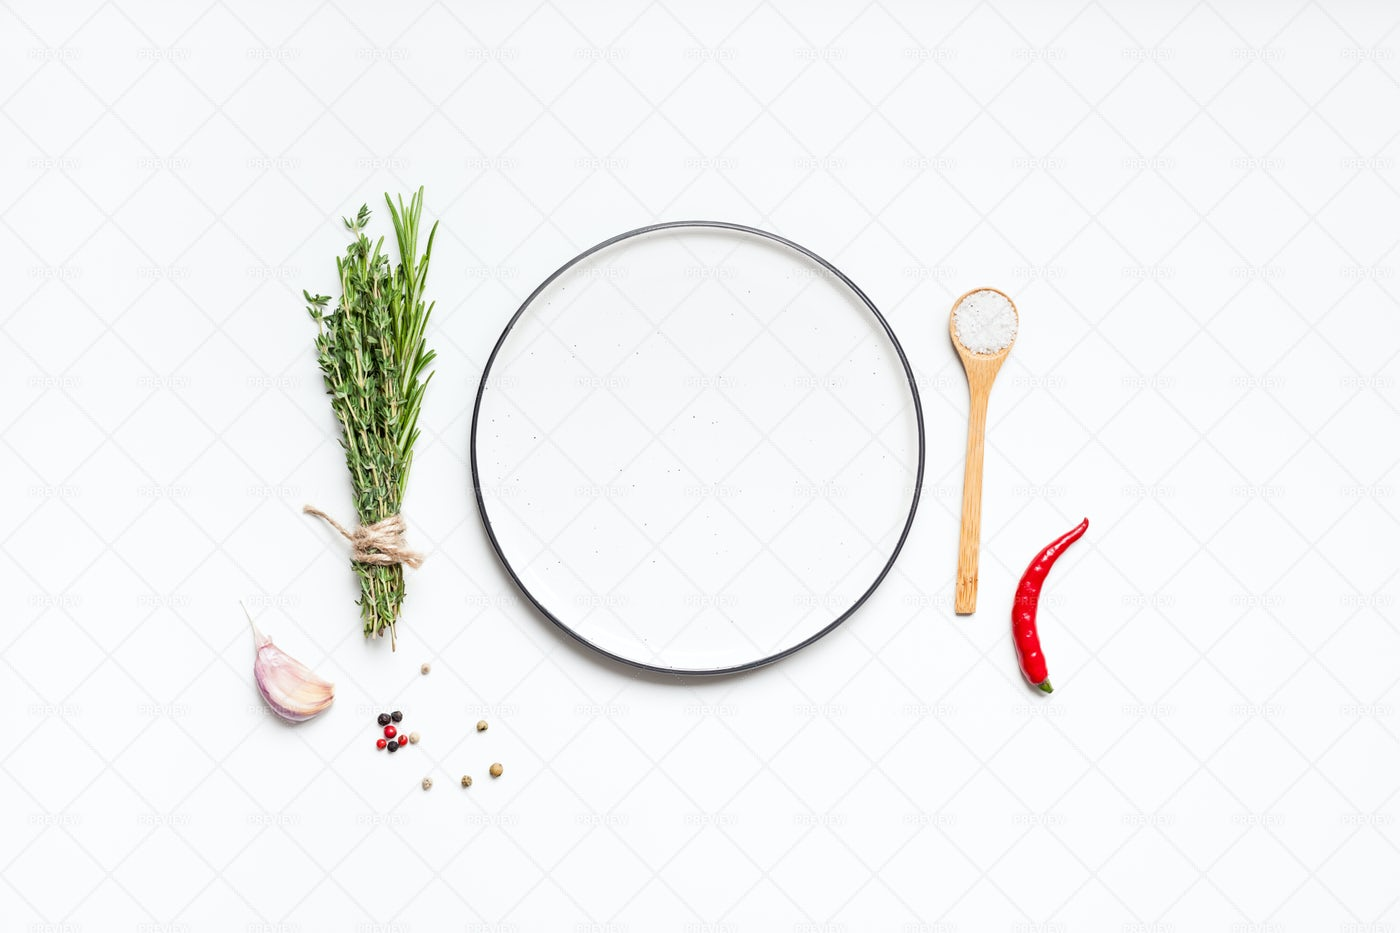 Empty Plate With Herbs And Spices: Stock Photos